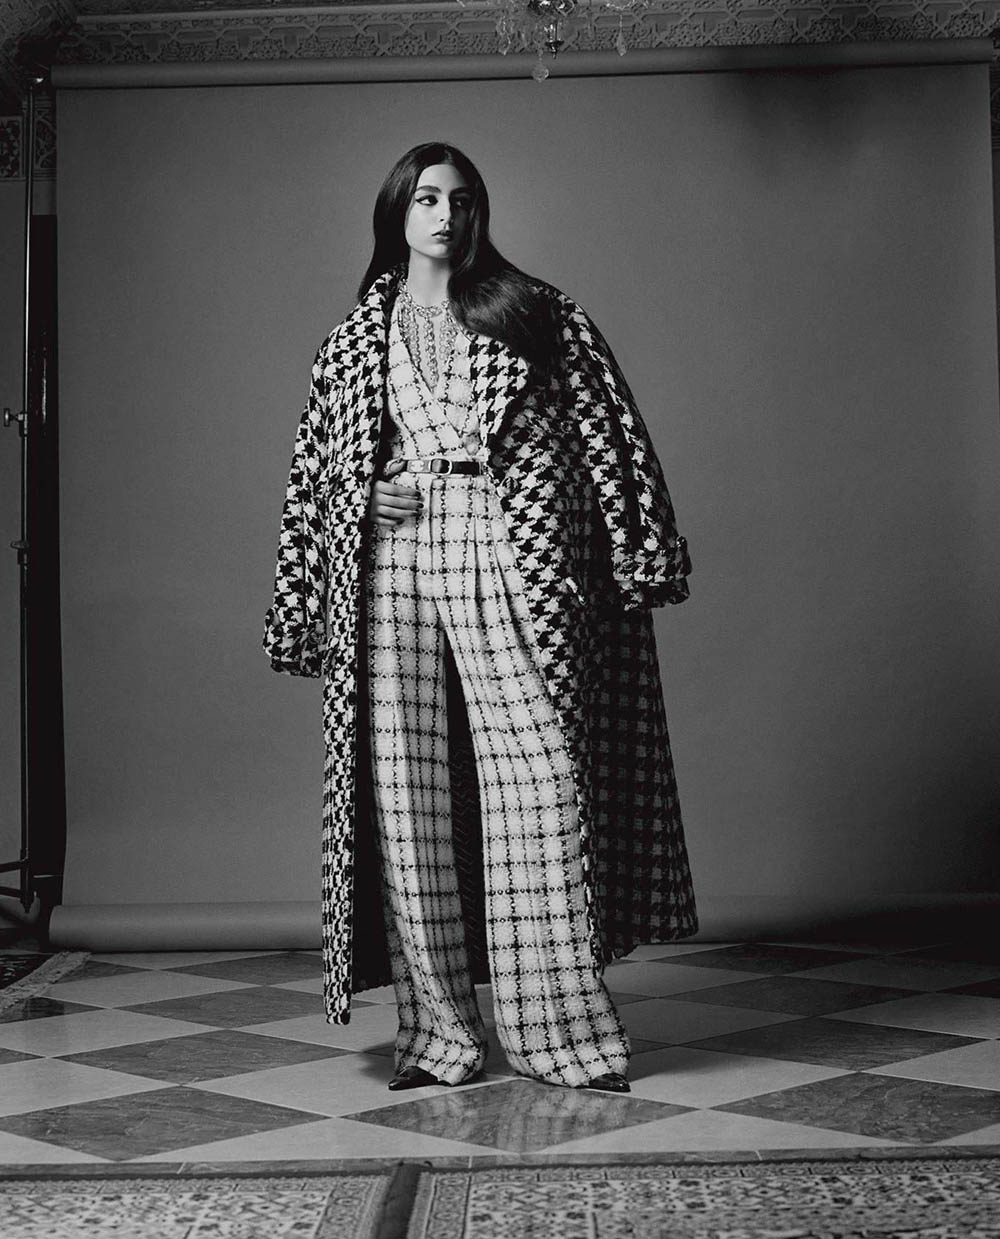 Nora Attal by Oliver Hadlee Pearch for Vogue Italia July 2019